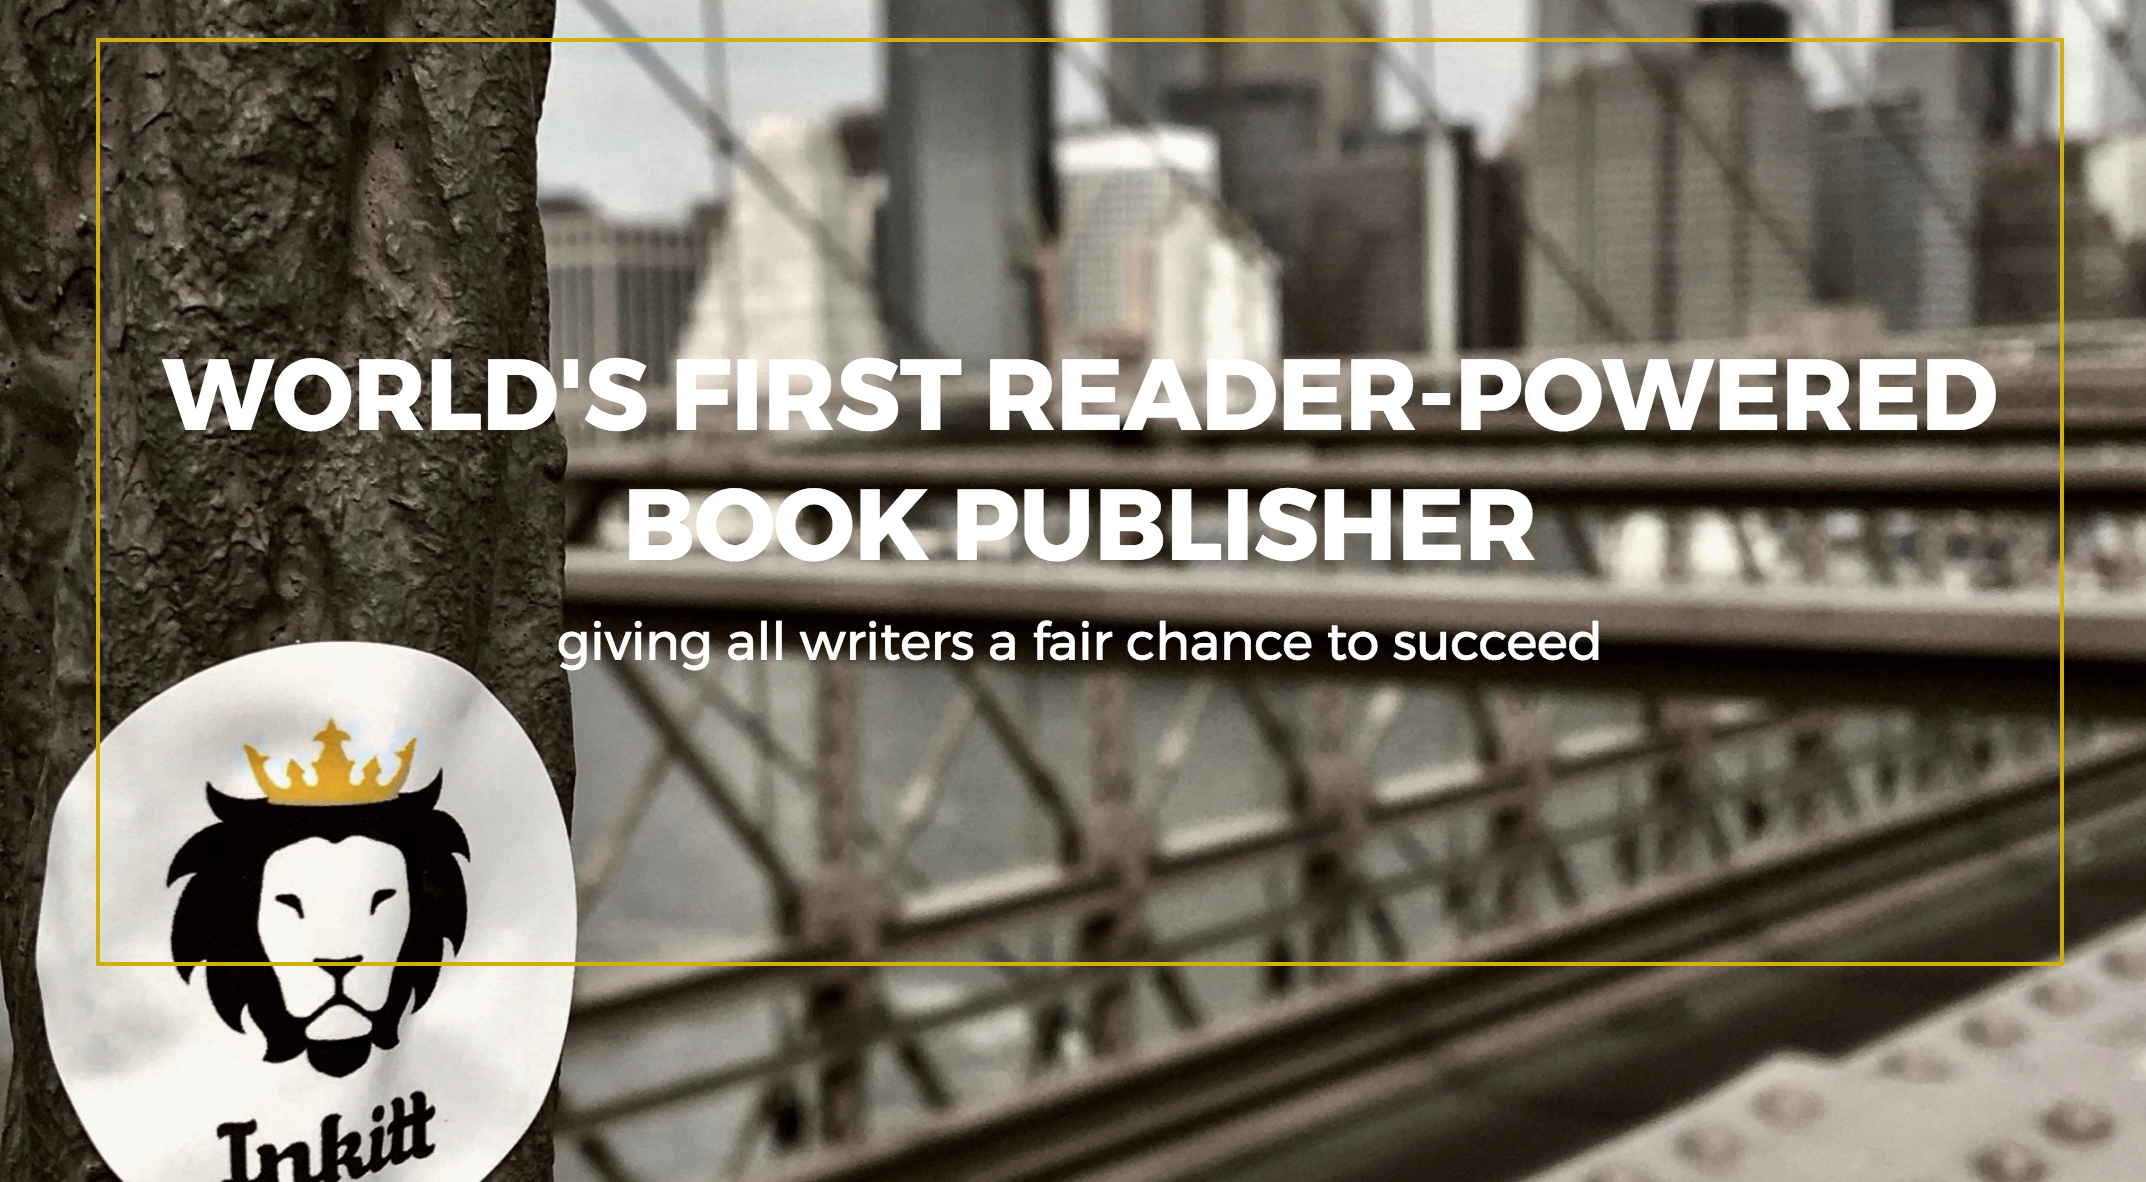 The World's First Reader-Powered Book Publisher